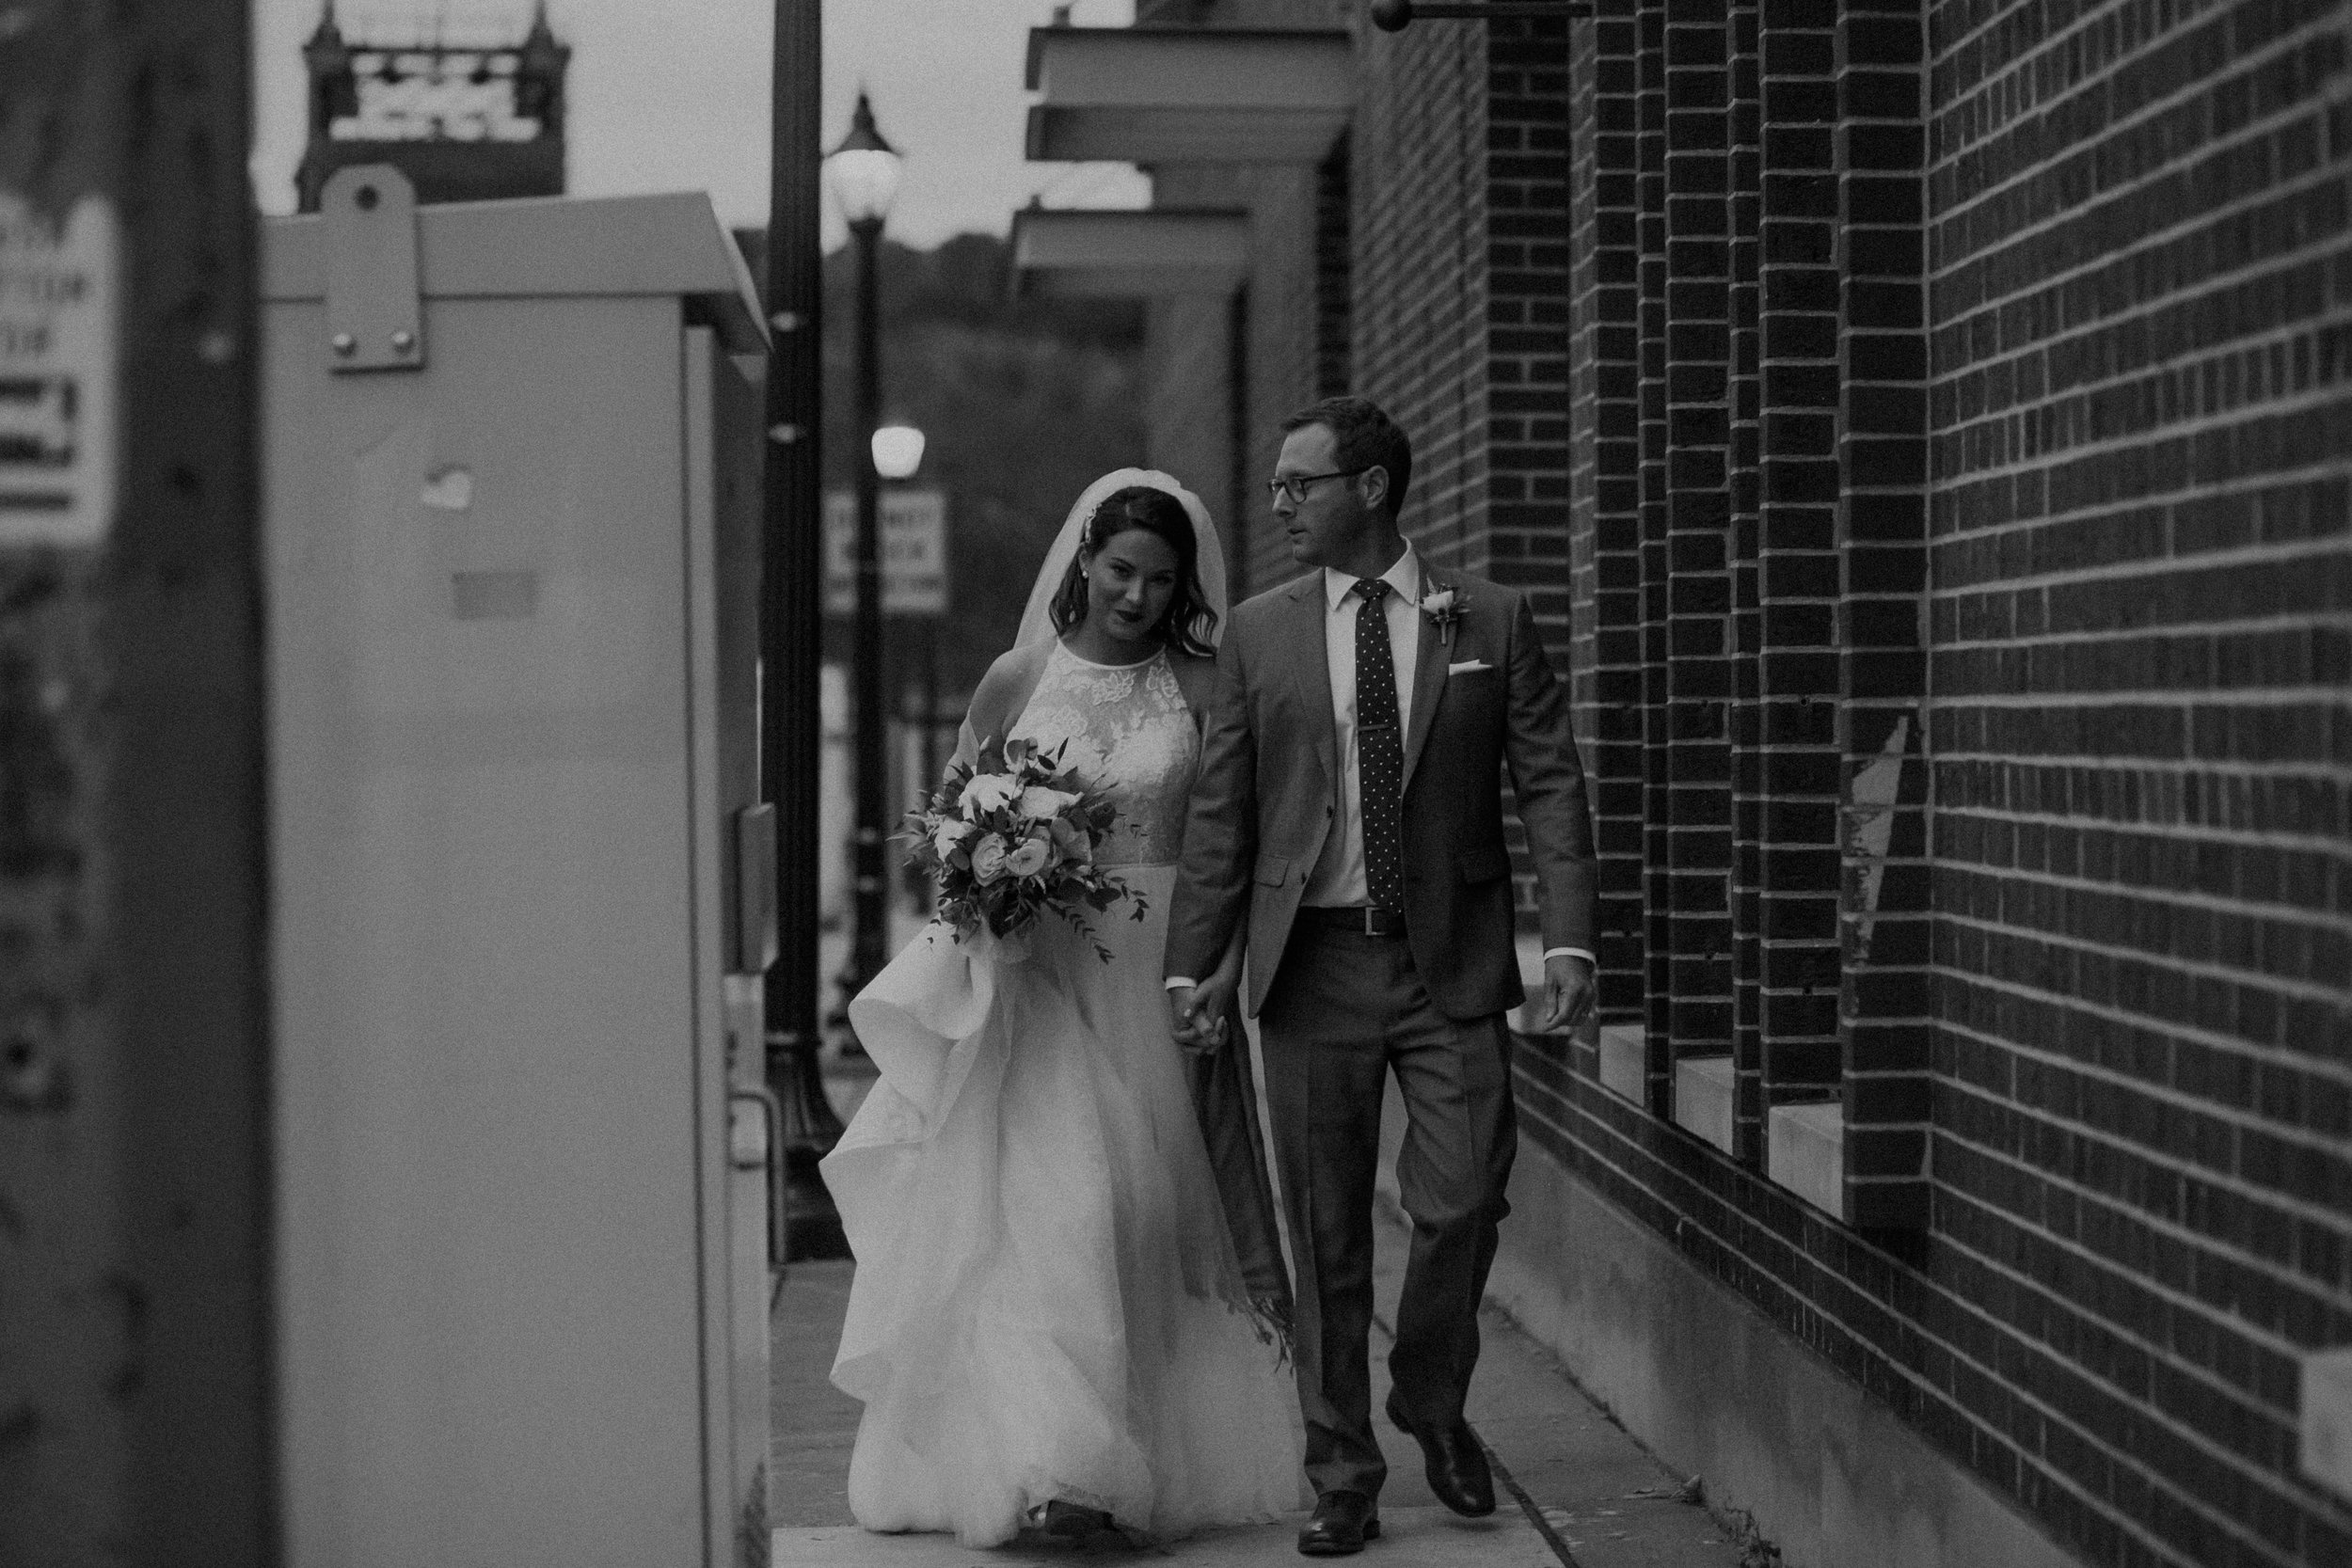 and bride and groom walk around the streets of Stillwater MN on their wedding day at sunset captured by Andrea Wagner Photography